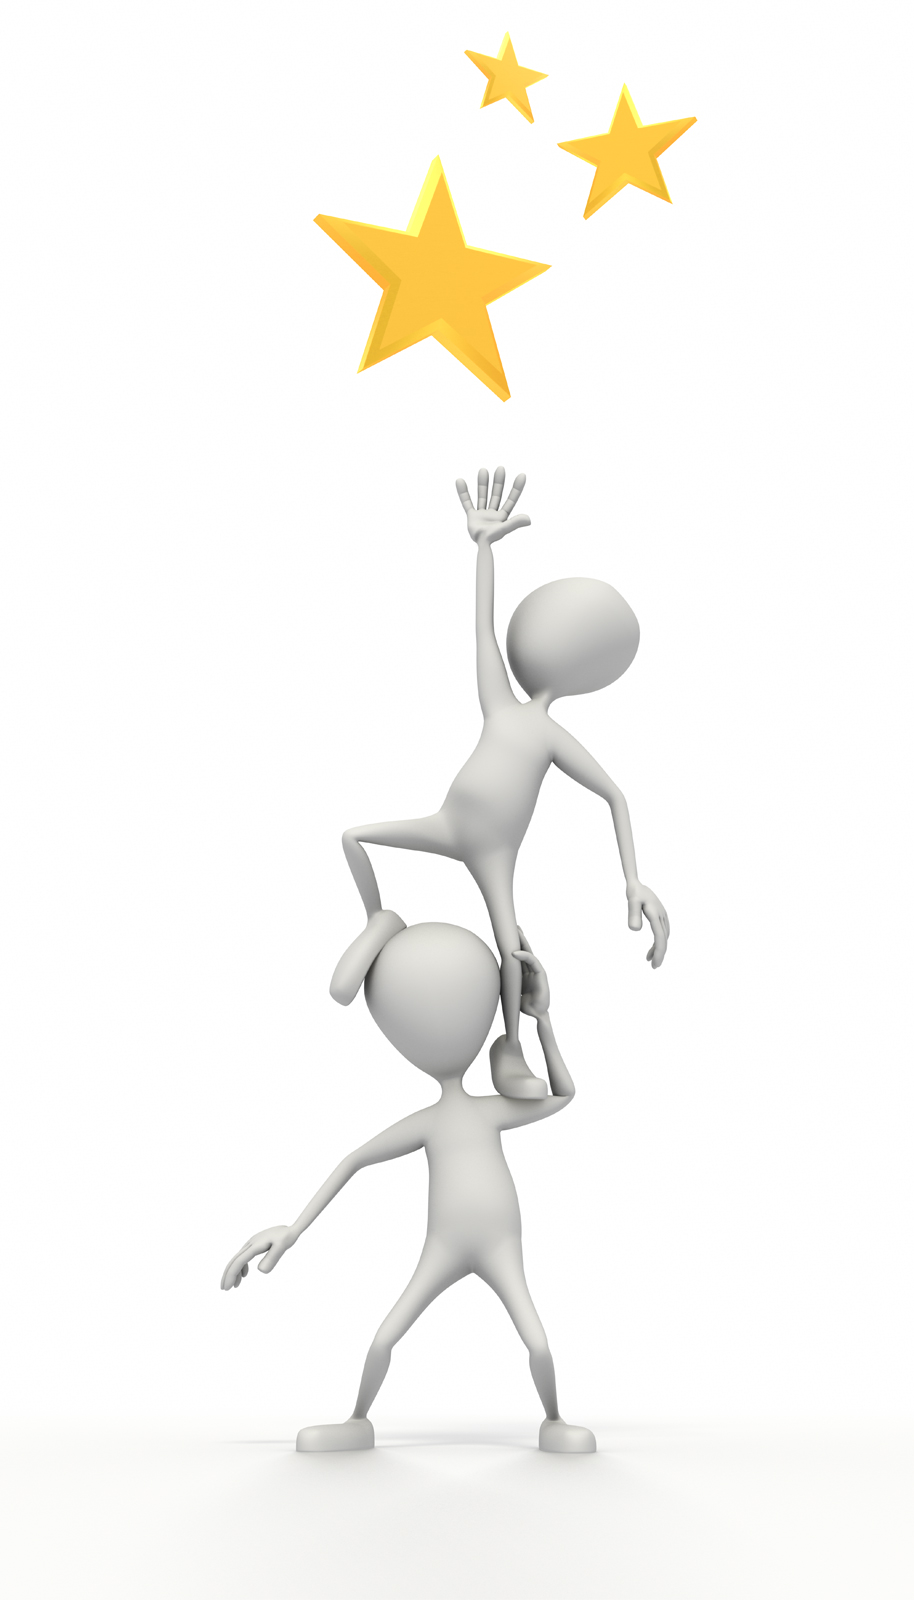 Reach for the stars clipart free image freeuse stock Free The Stars Cliparts, Download Free Clip Art, Free Clip ... image freeuse stock